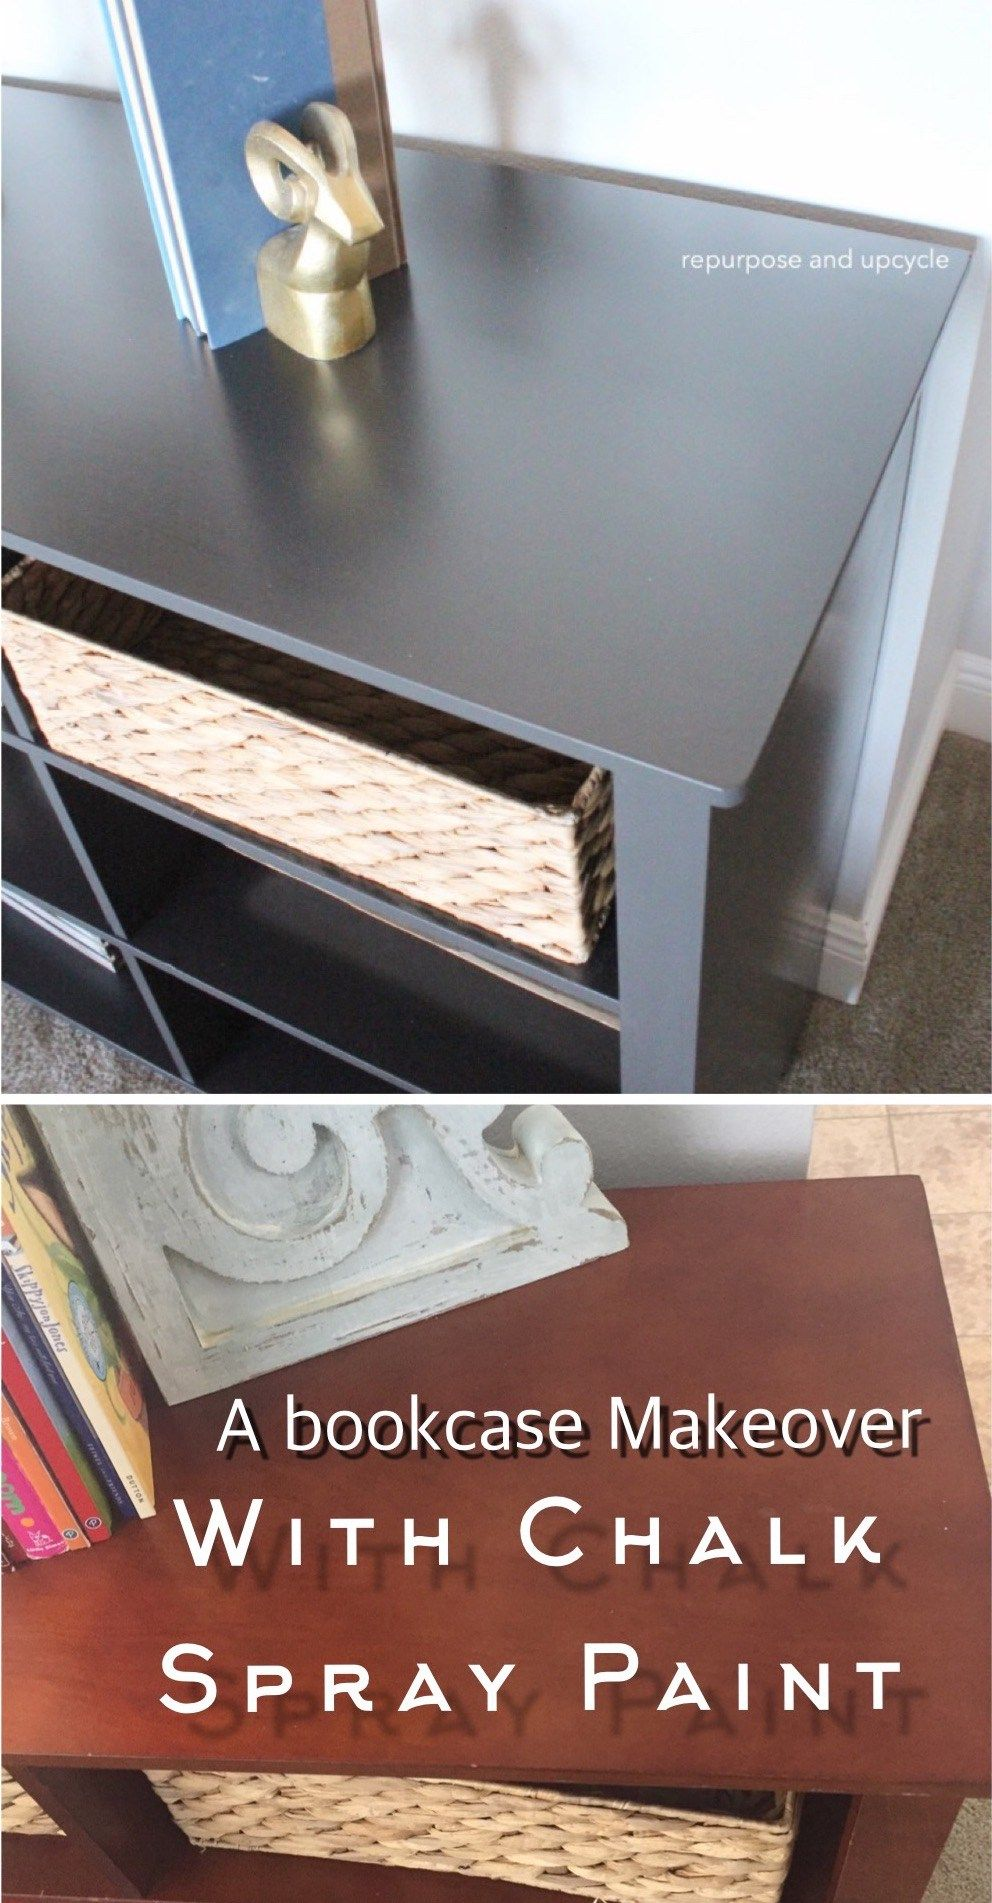 How To Refurbish A Faux Wood Bookcase With Chalk Spray Paint Bookcase Makeover Spray Painting Wood Furniture Chalk Spray Paint